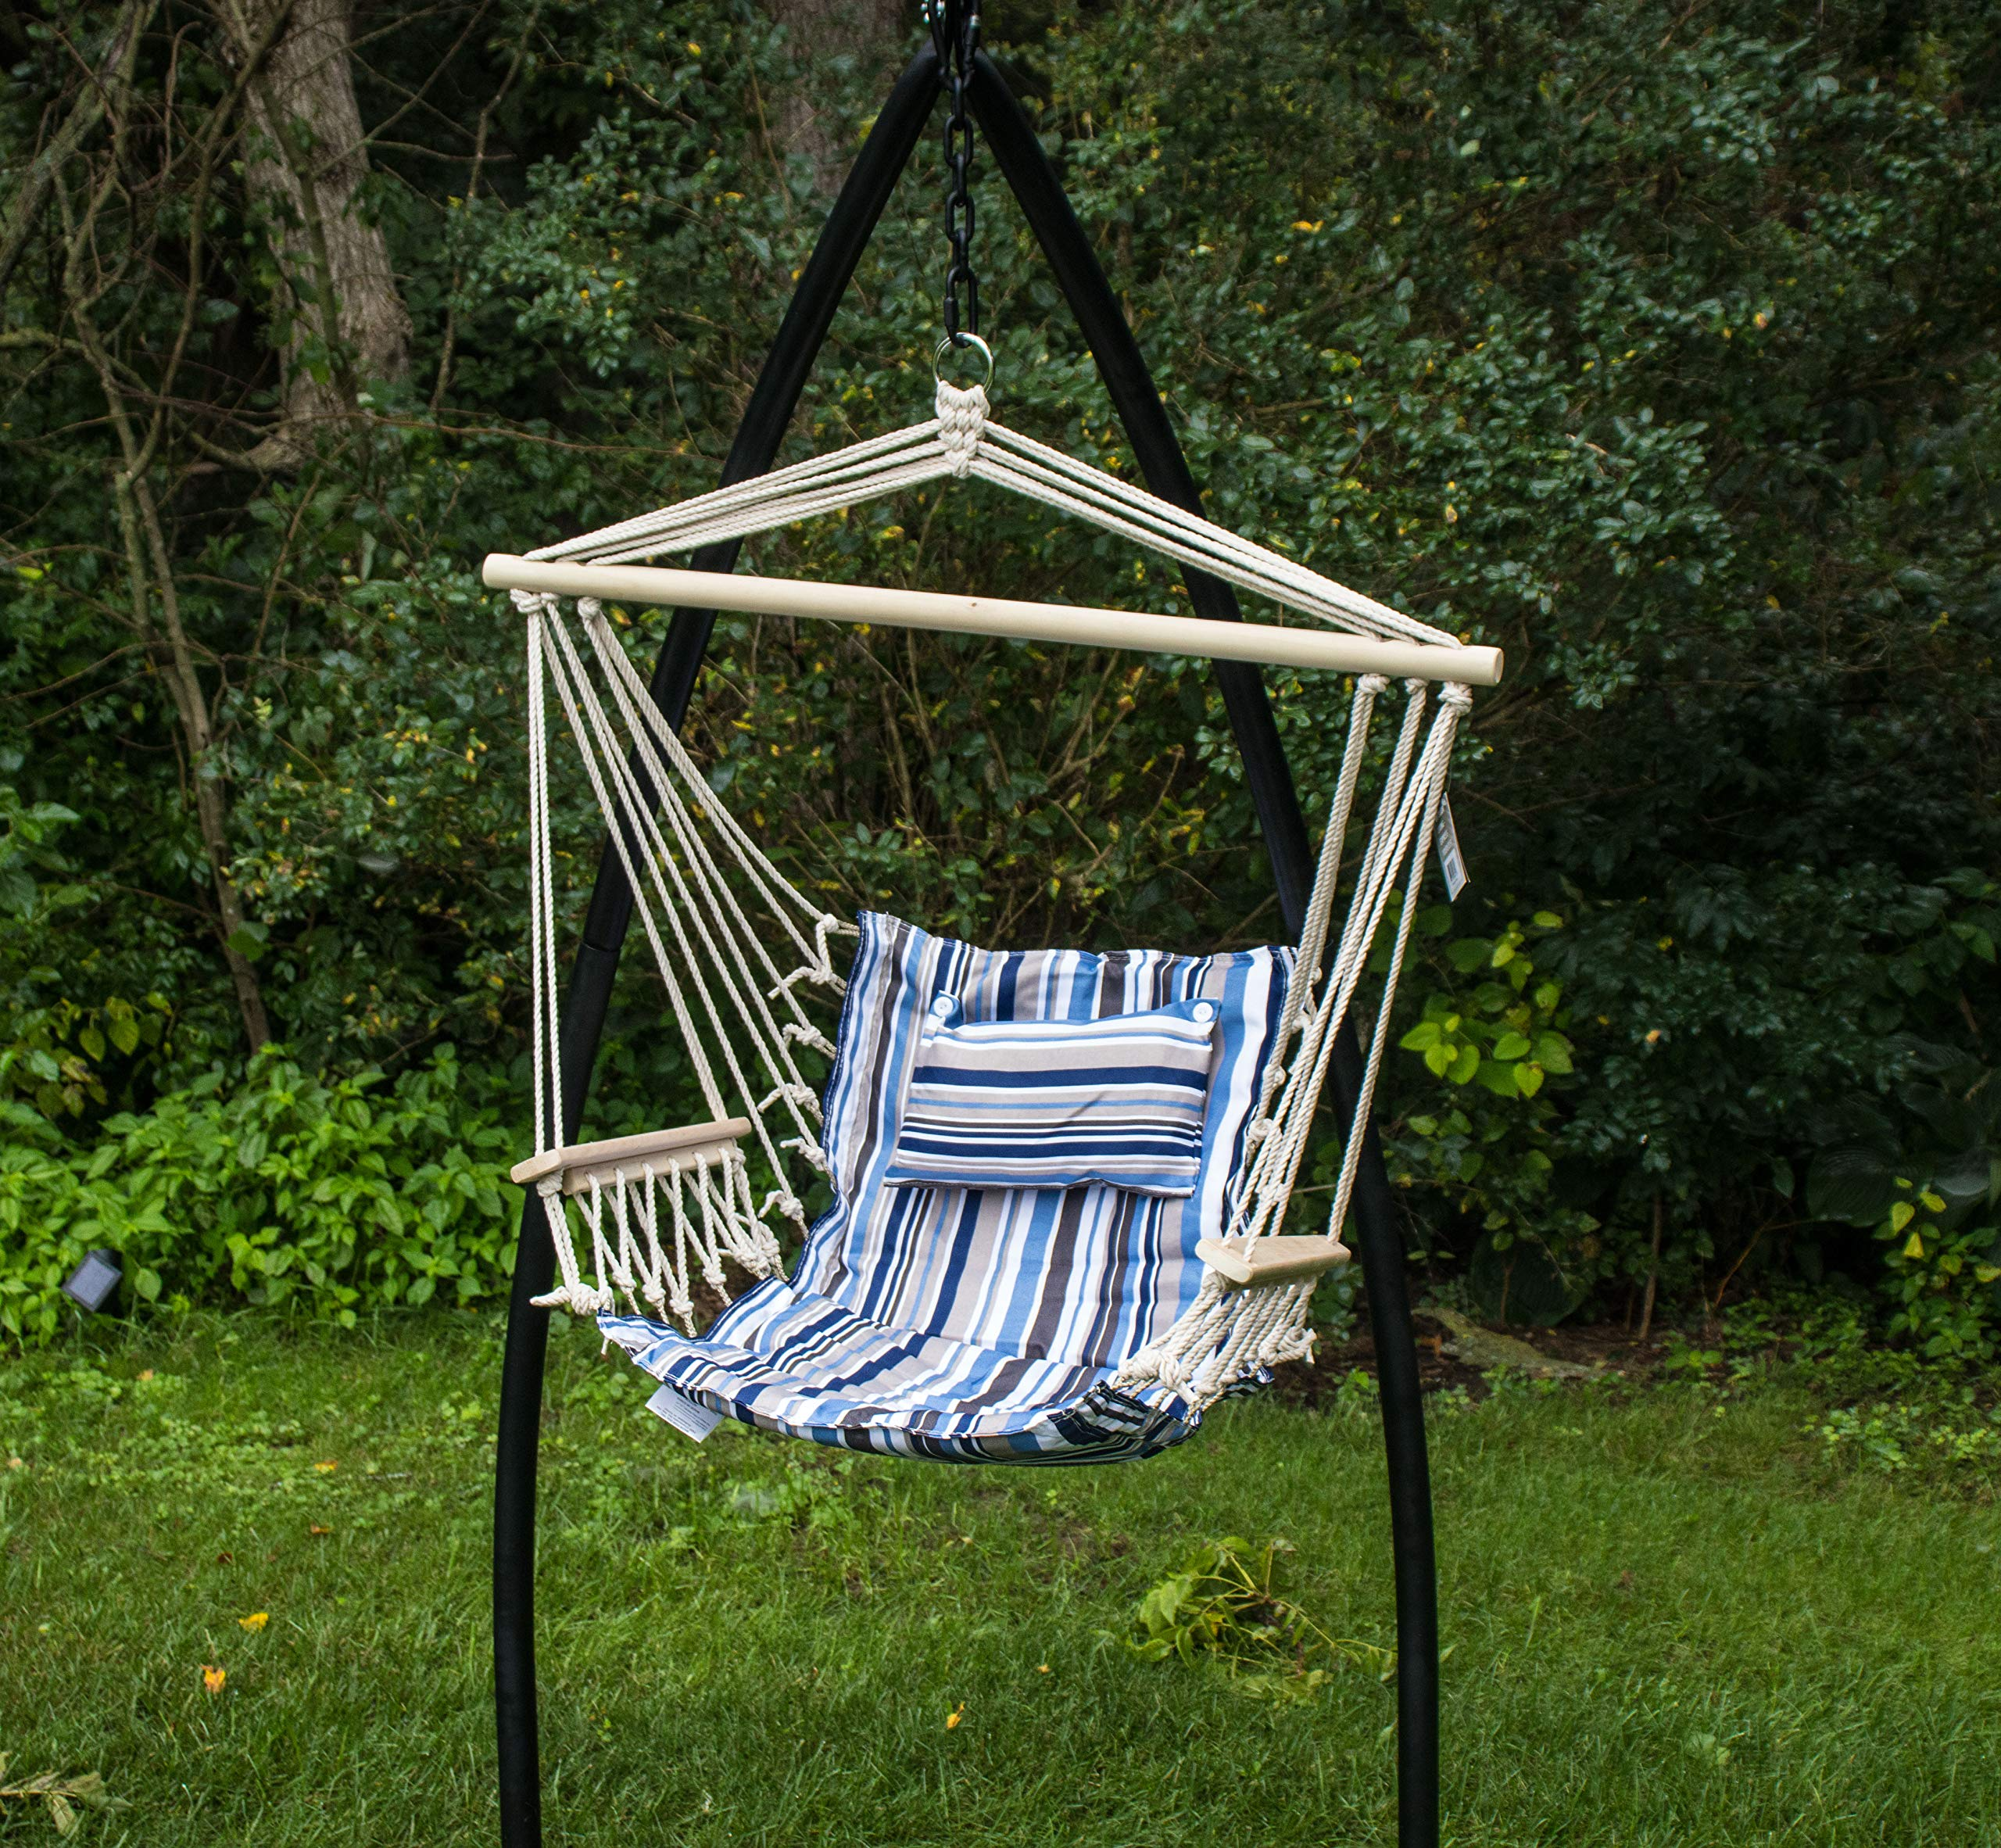 BACKYARD EXPRESSIONS PATIO · HOME · GARDEN 914917 Backyard Expressions Hammock Chair and Stand, Blue Stripes